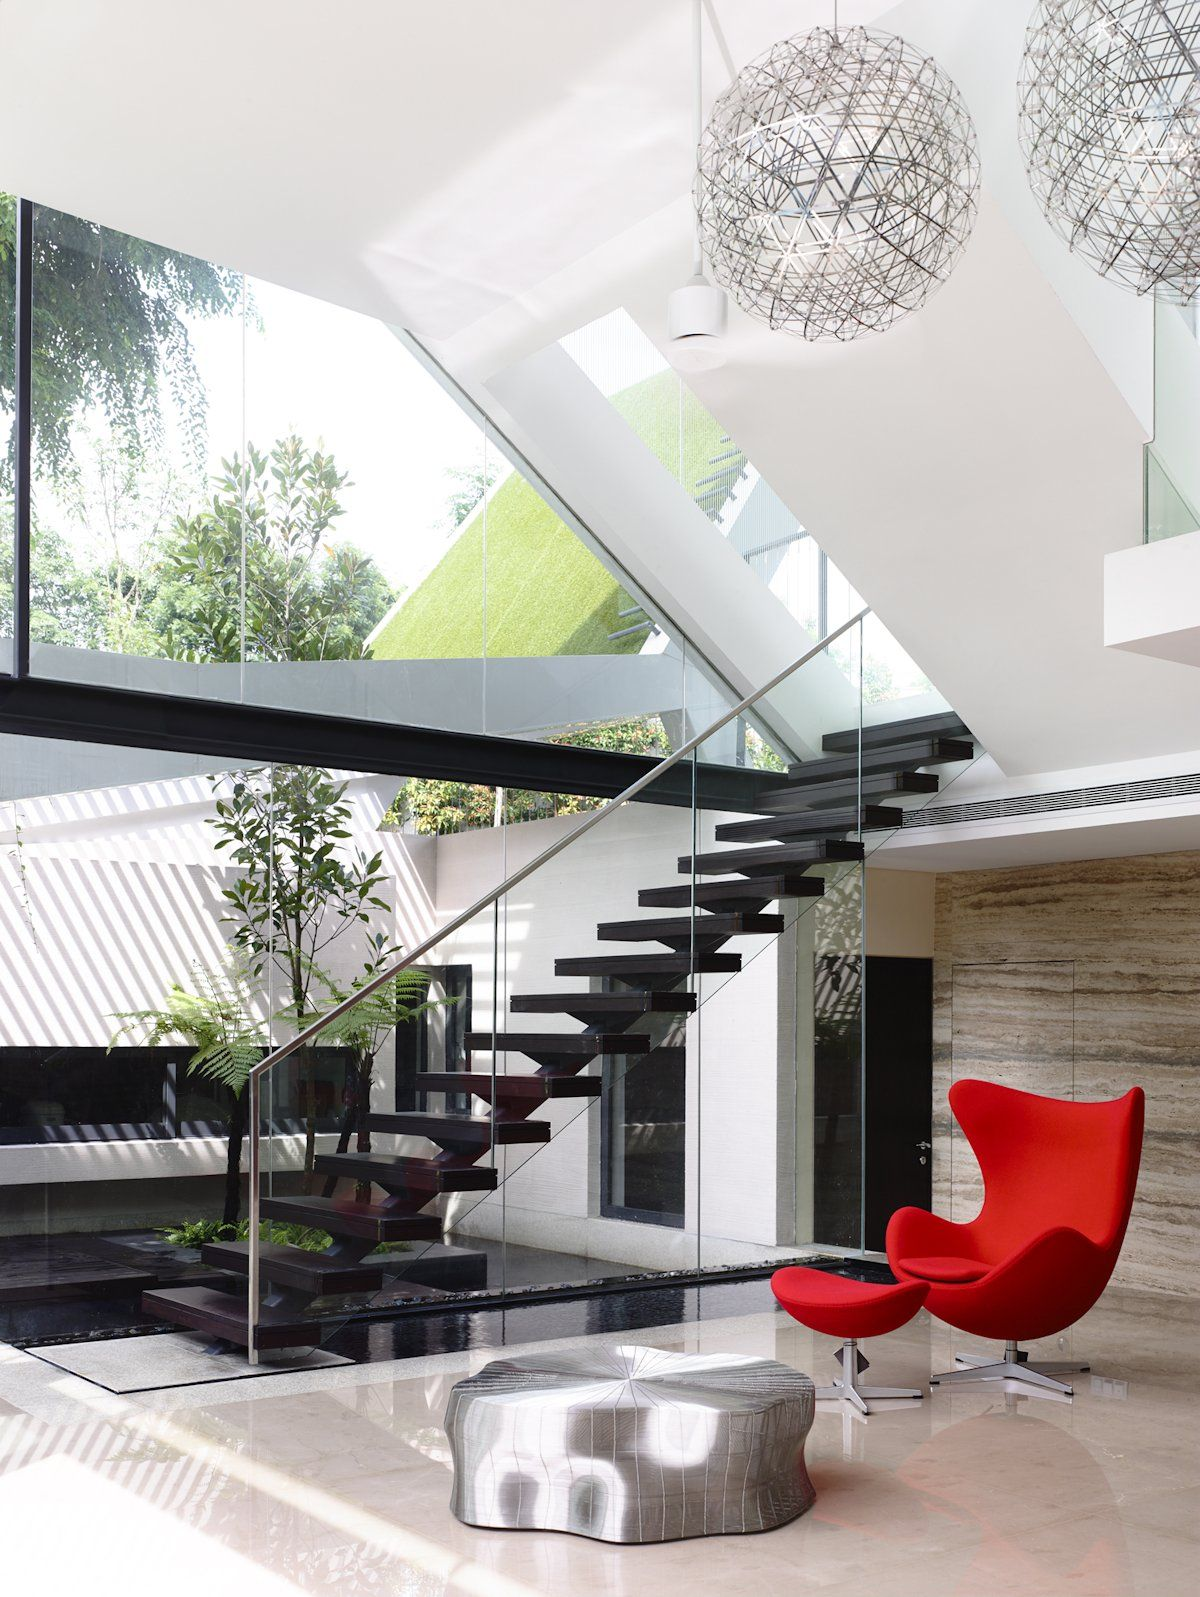 Modern, Stairs, Water Feature, Home In Singapore